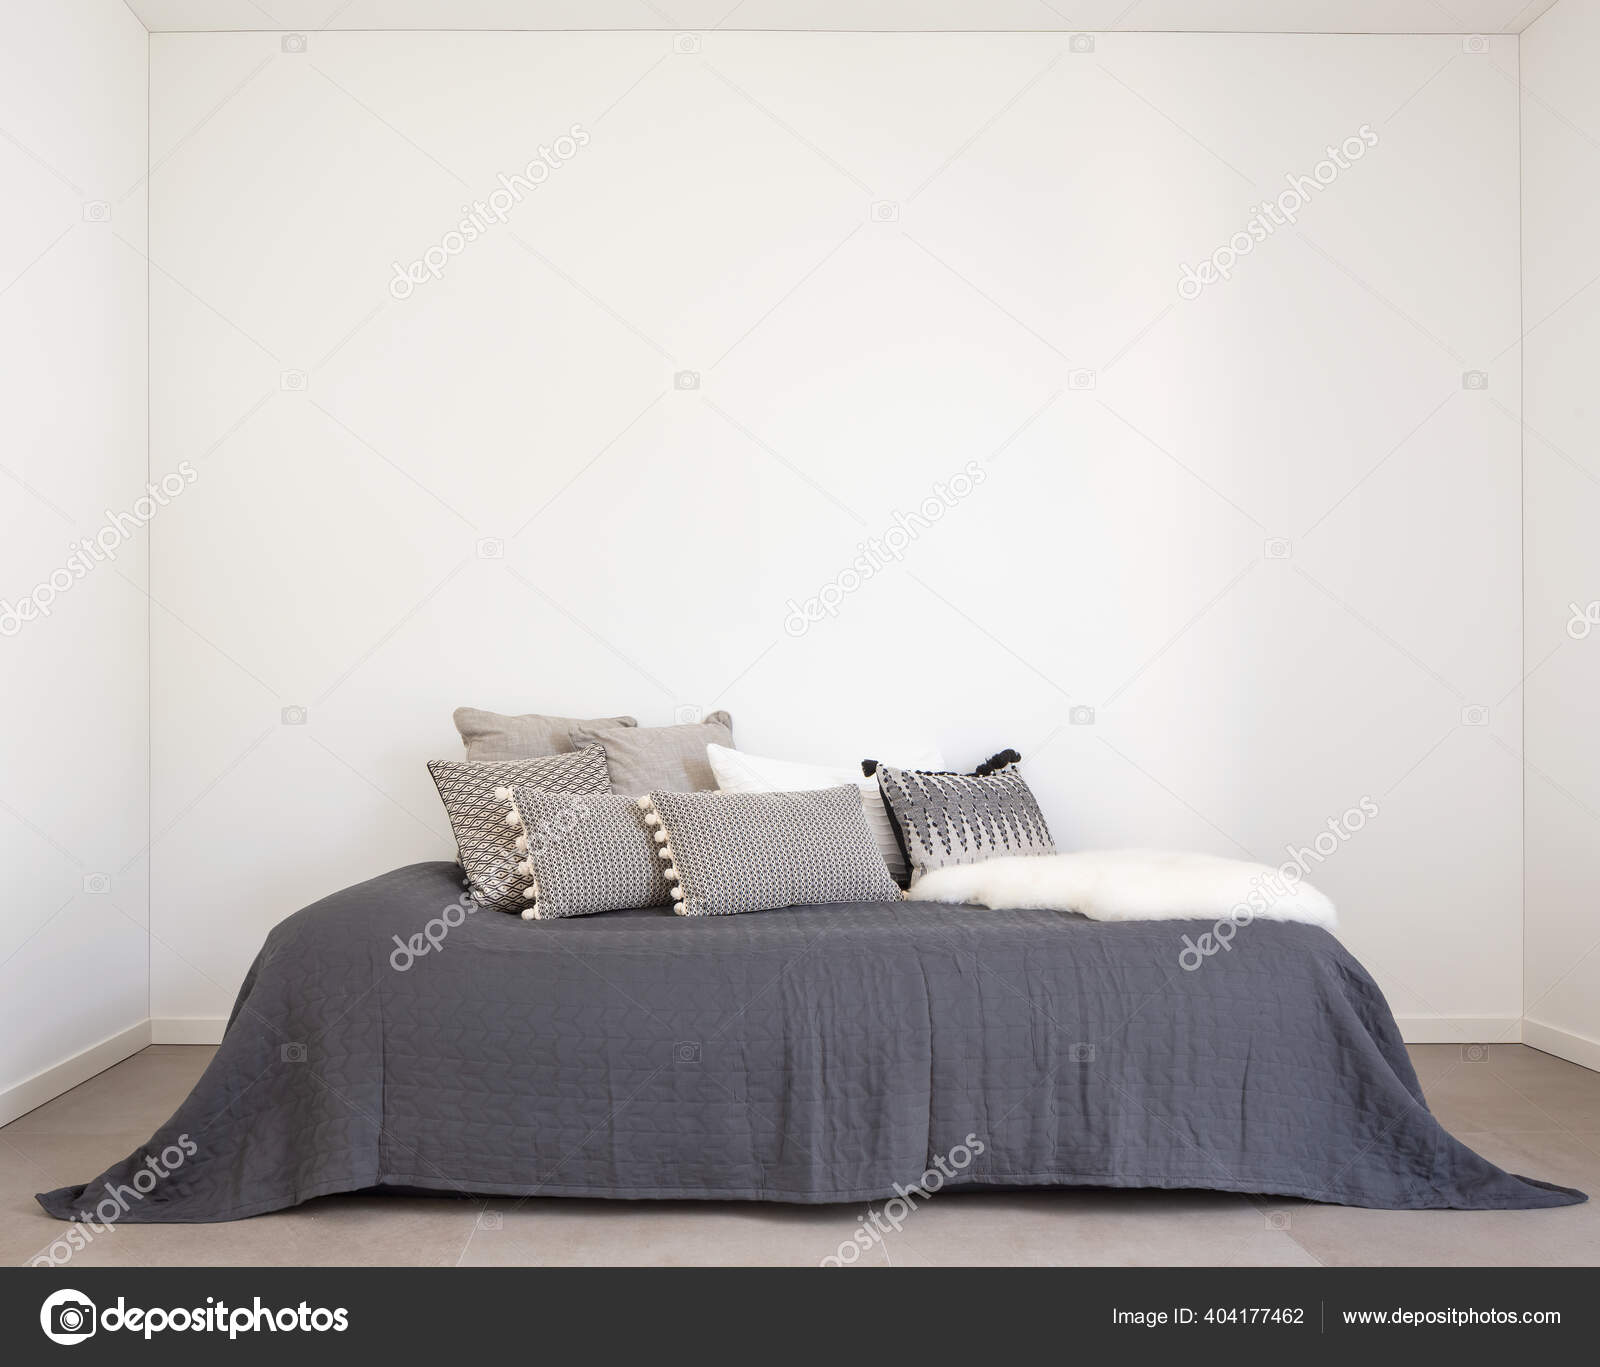 Nice Bedroom Bed Lots Pillows Detail Bed Large White Wall Stock Photo C Zveiger 404177462